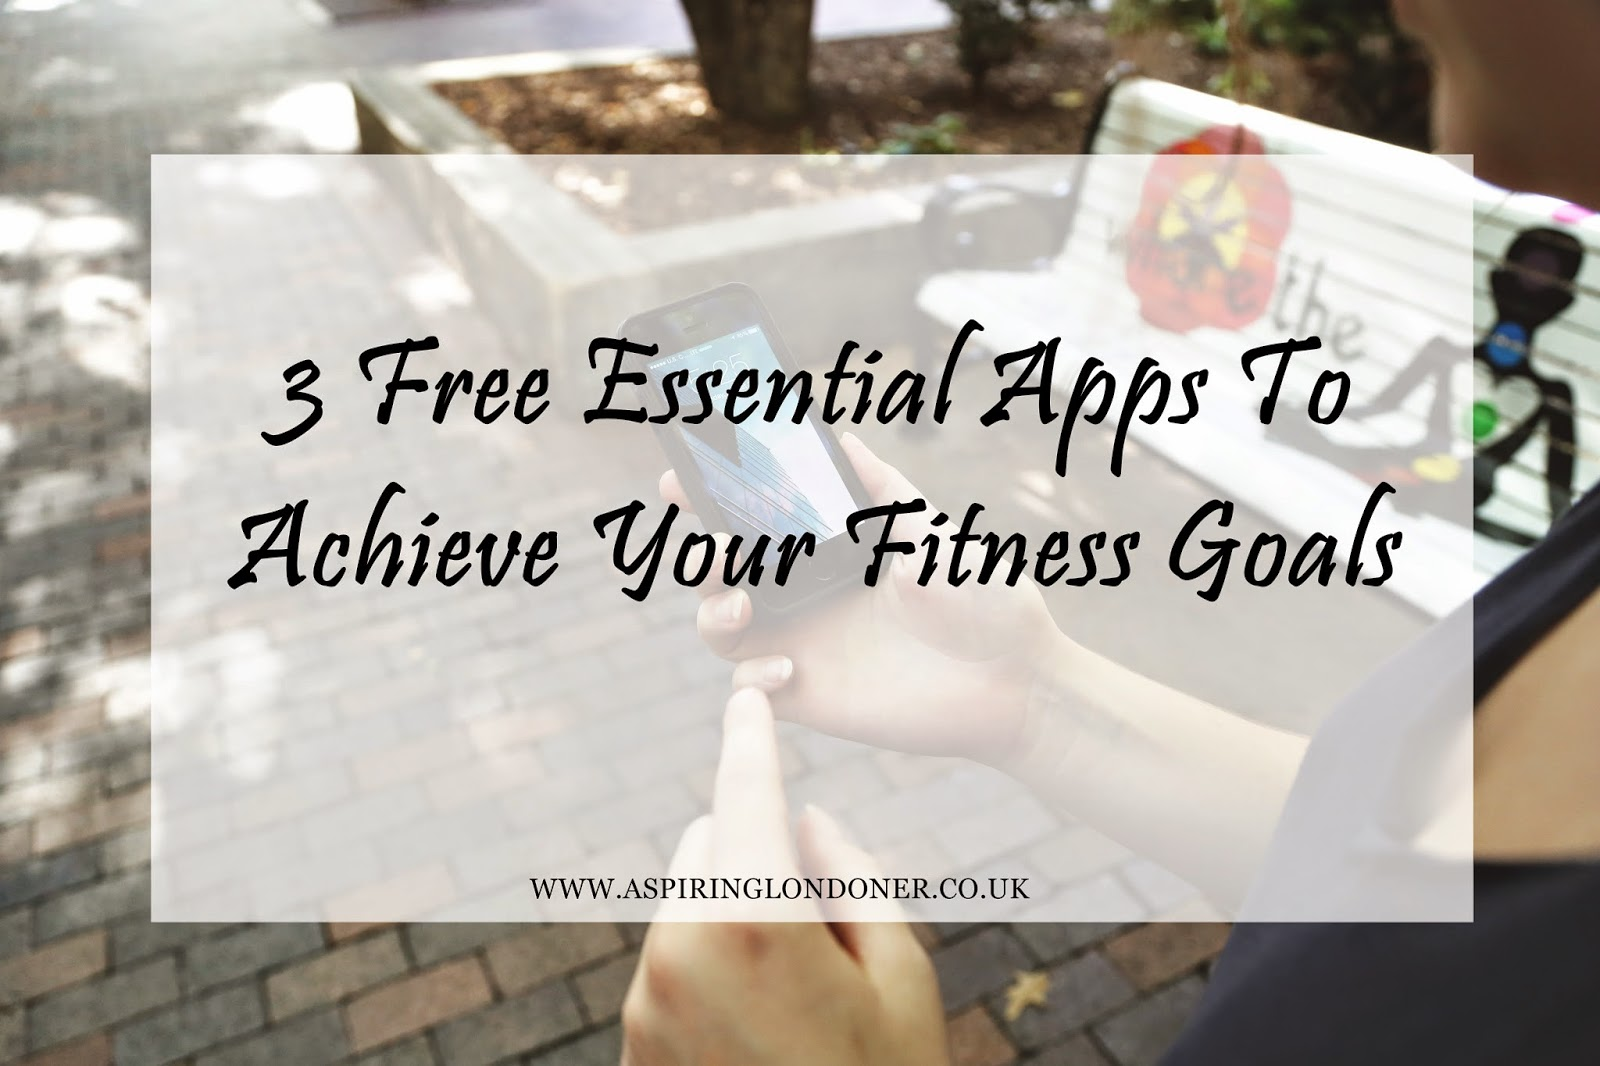 3 Free Essential Apps To Achieve Your Fitness Goals - Aspiring Londoner